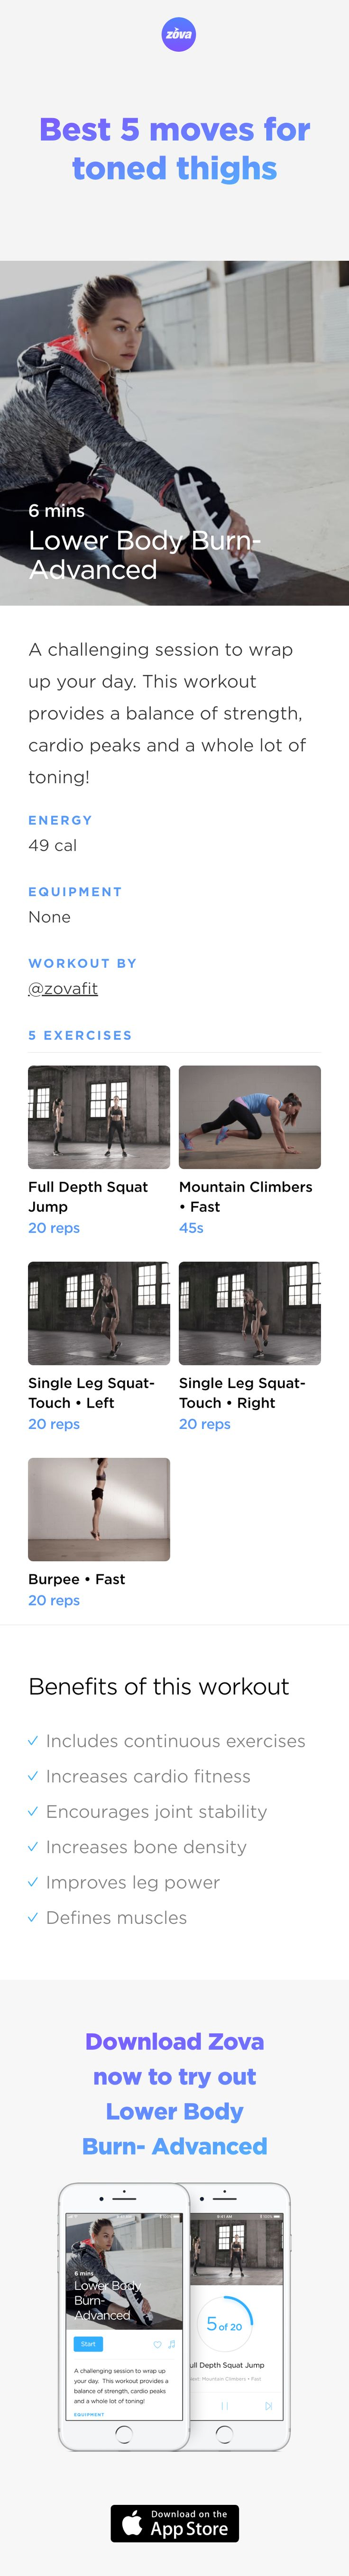 You don't need to punish your legs with hours on the treadmill. Just give your thighs the love they deserve! These five effective yet easy moves will help tone your legs and define your muscles. They don't require equipment so you can do them outside, in your lounge room or in your office. Easy! #legs #butt #workout #fitness #HIIT #fullbody #sweat #strength #bodyweight